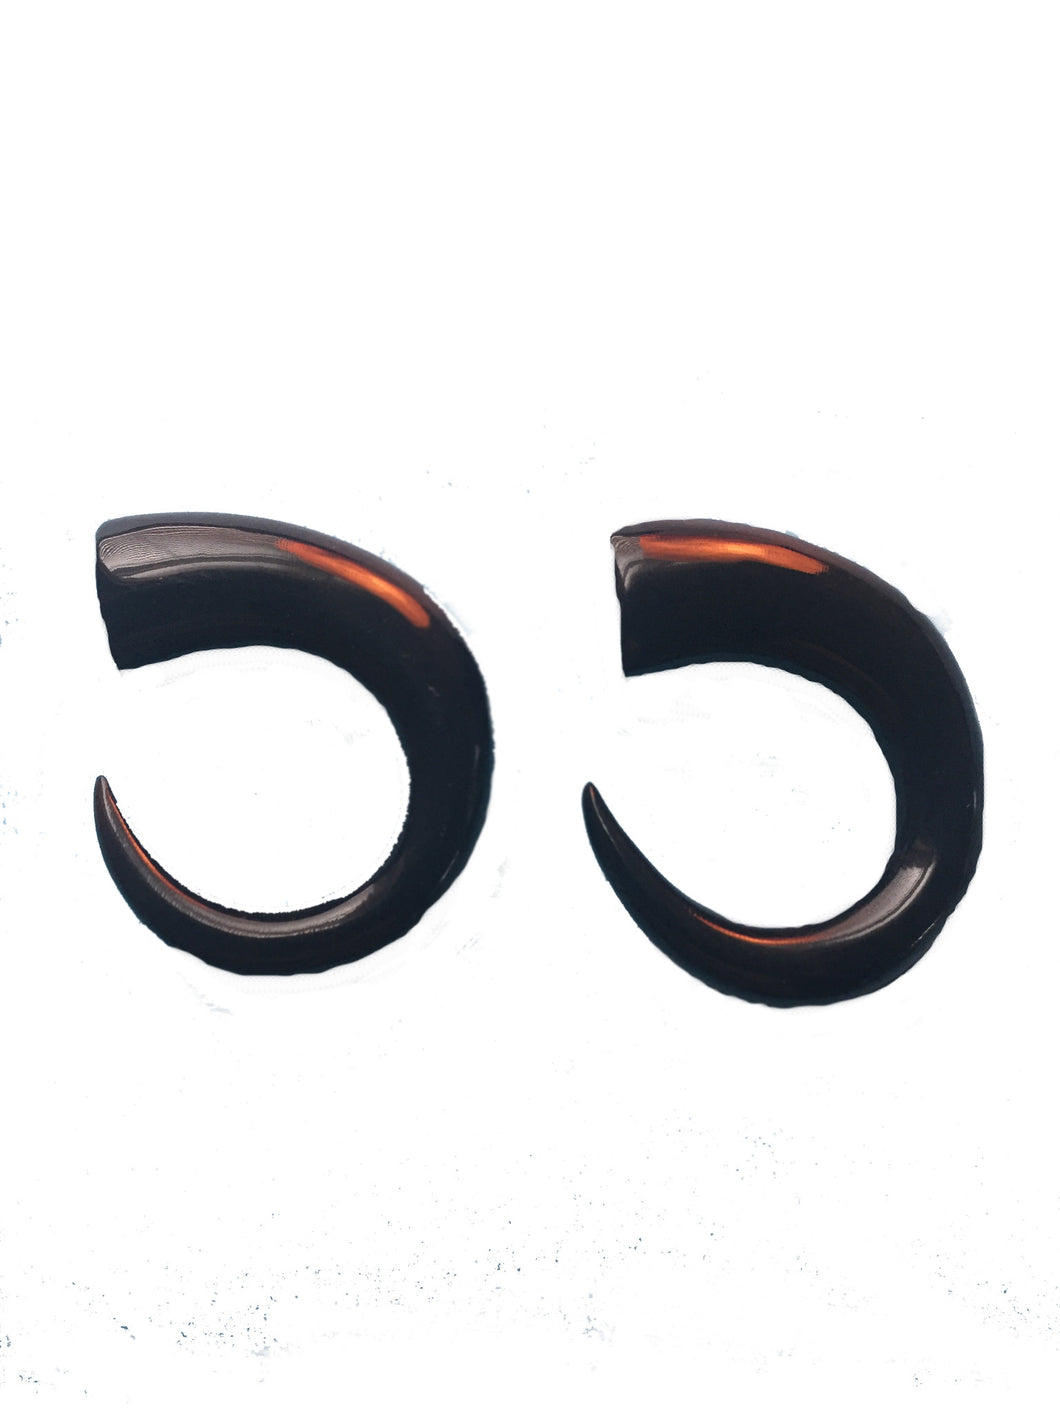 Water Buffalo Talon Ear Plugs 4mm: 6 Gauge